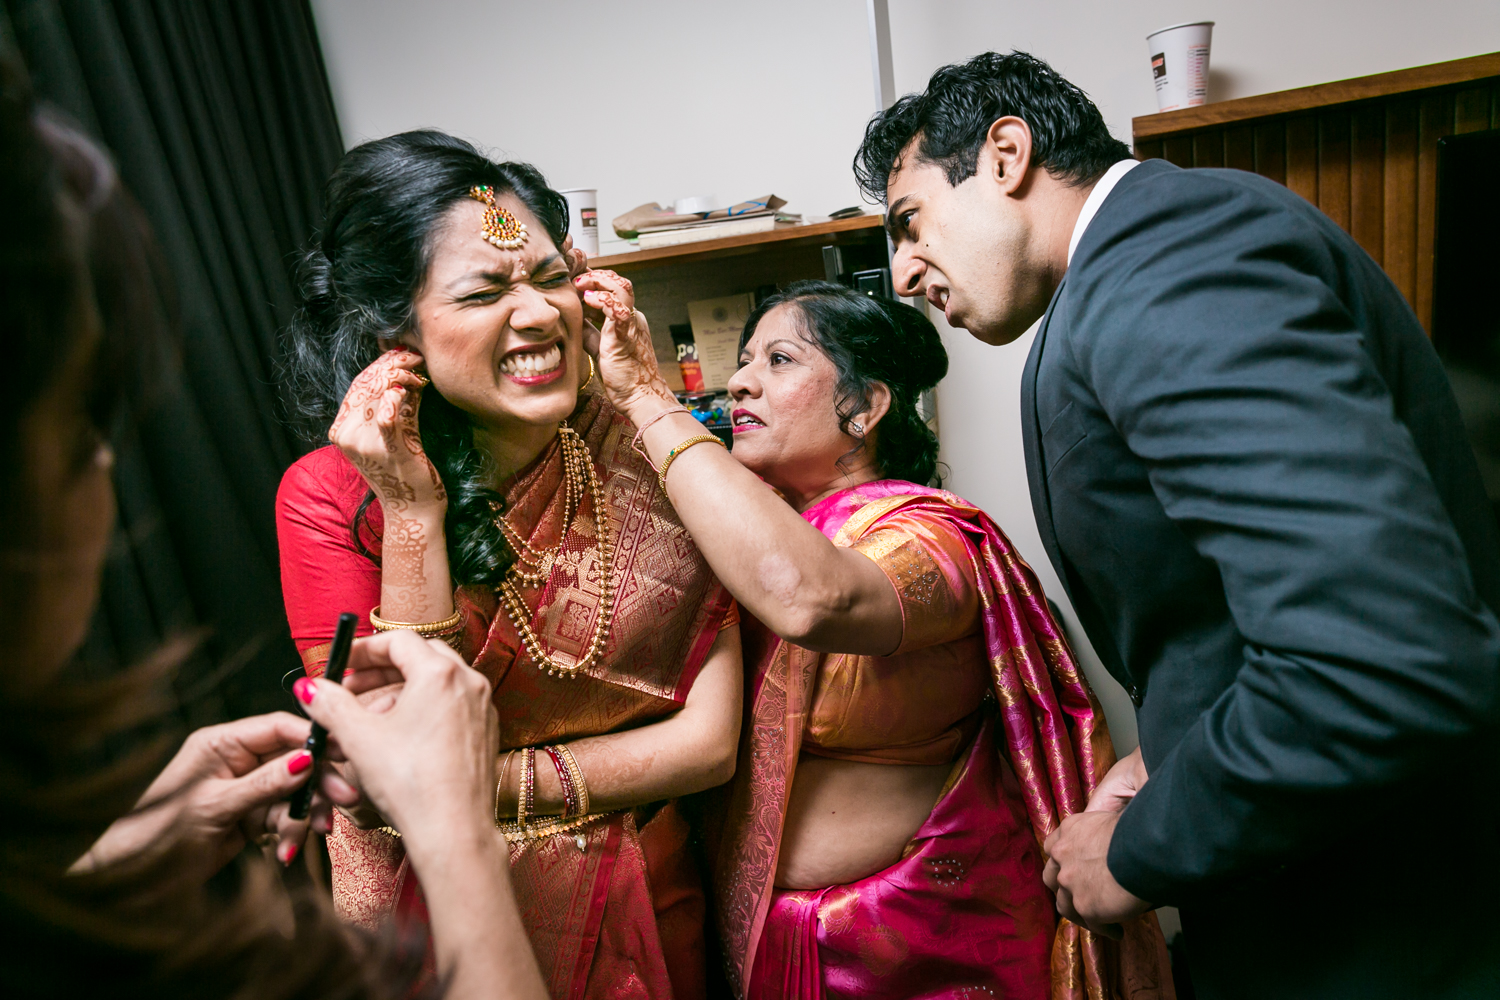 Mother and brother helping Indian bride put in her earrings